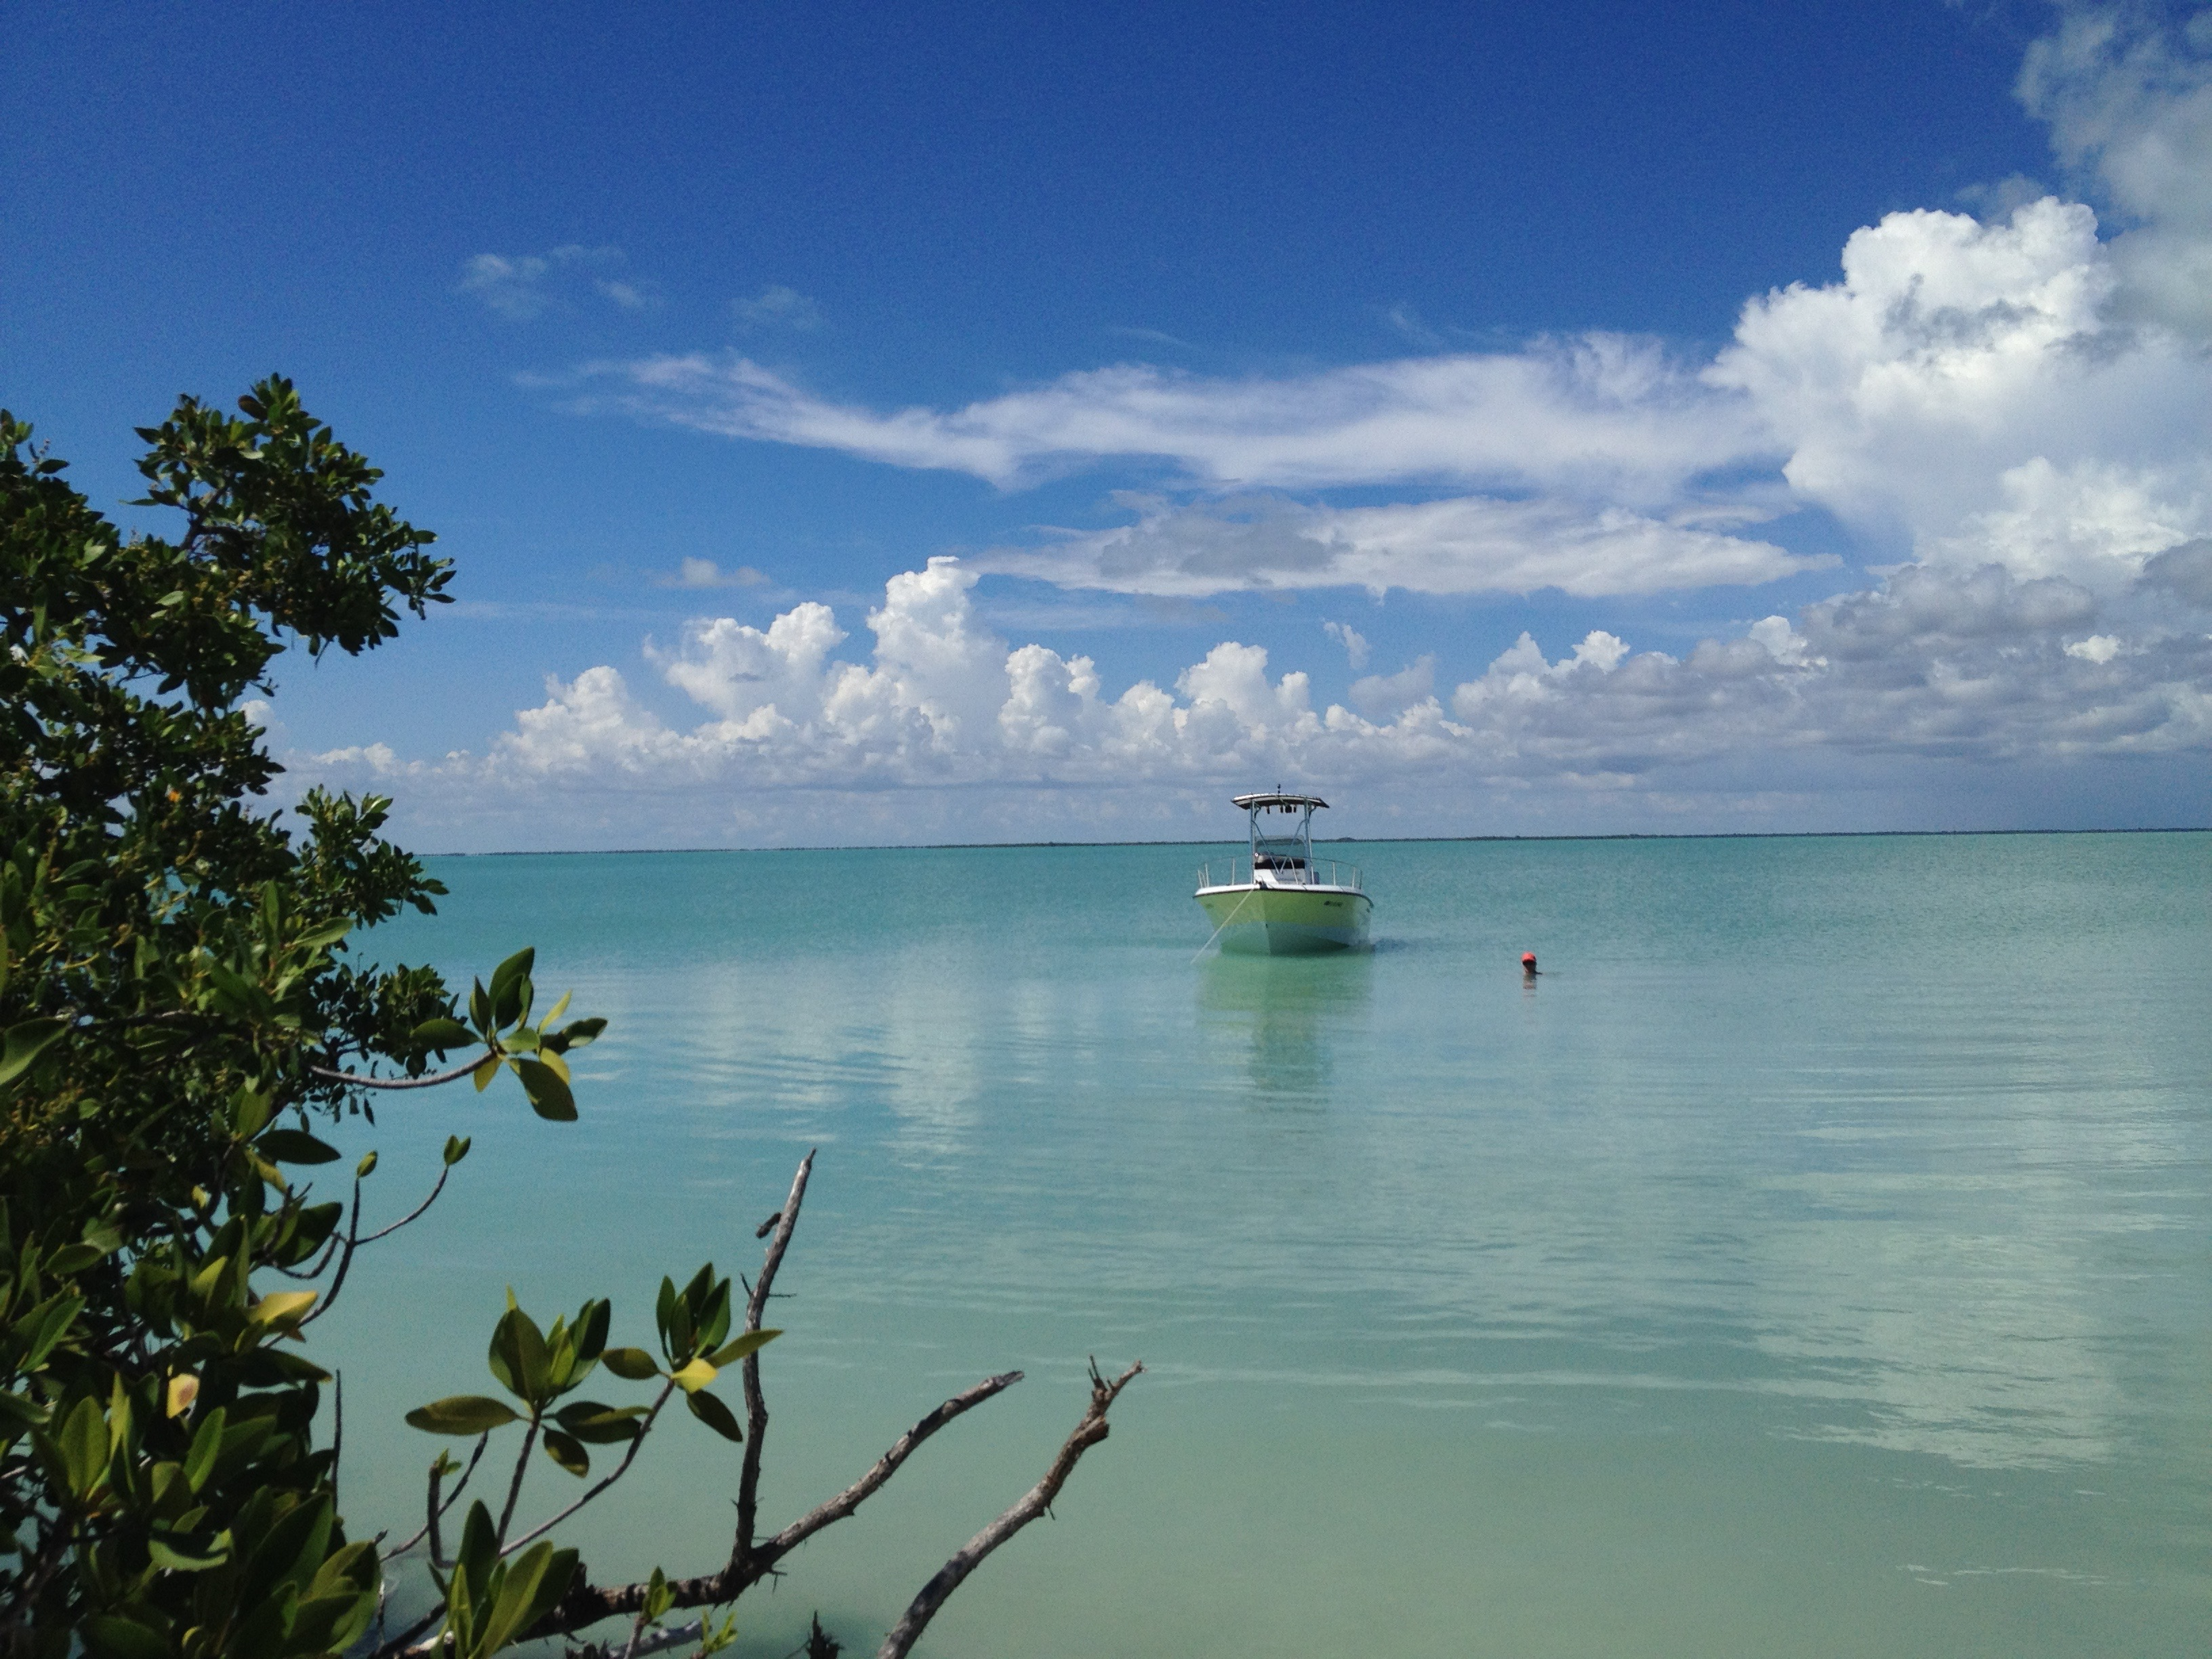 Key Largo in the Florida Keys